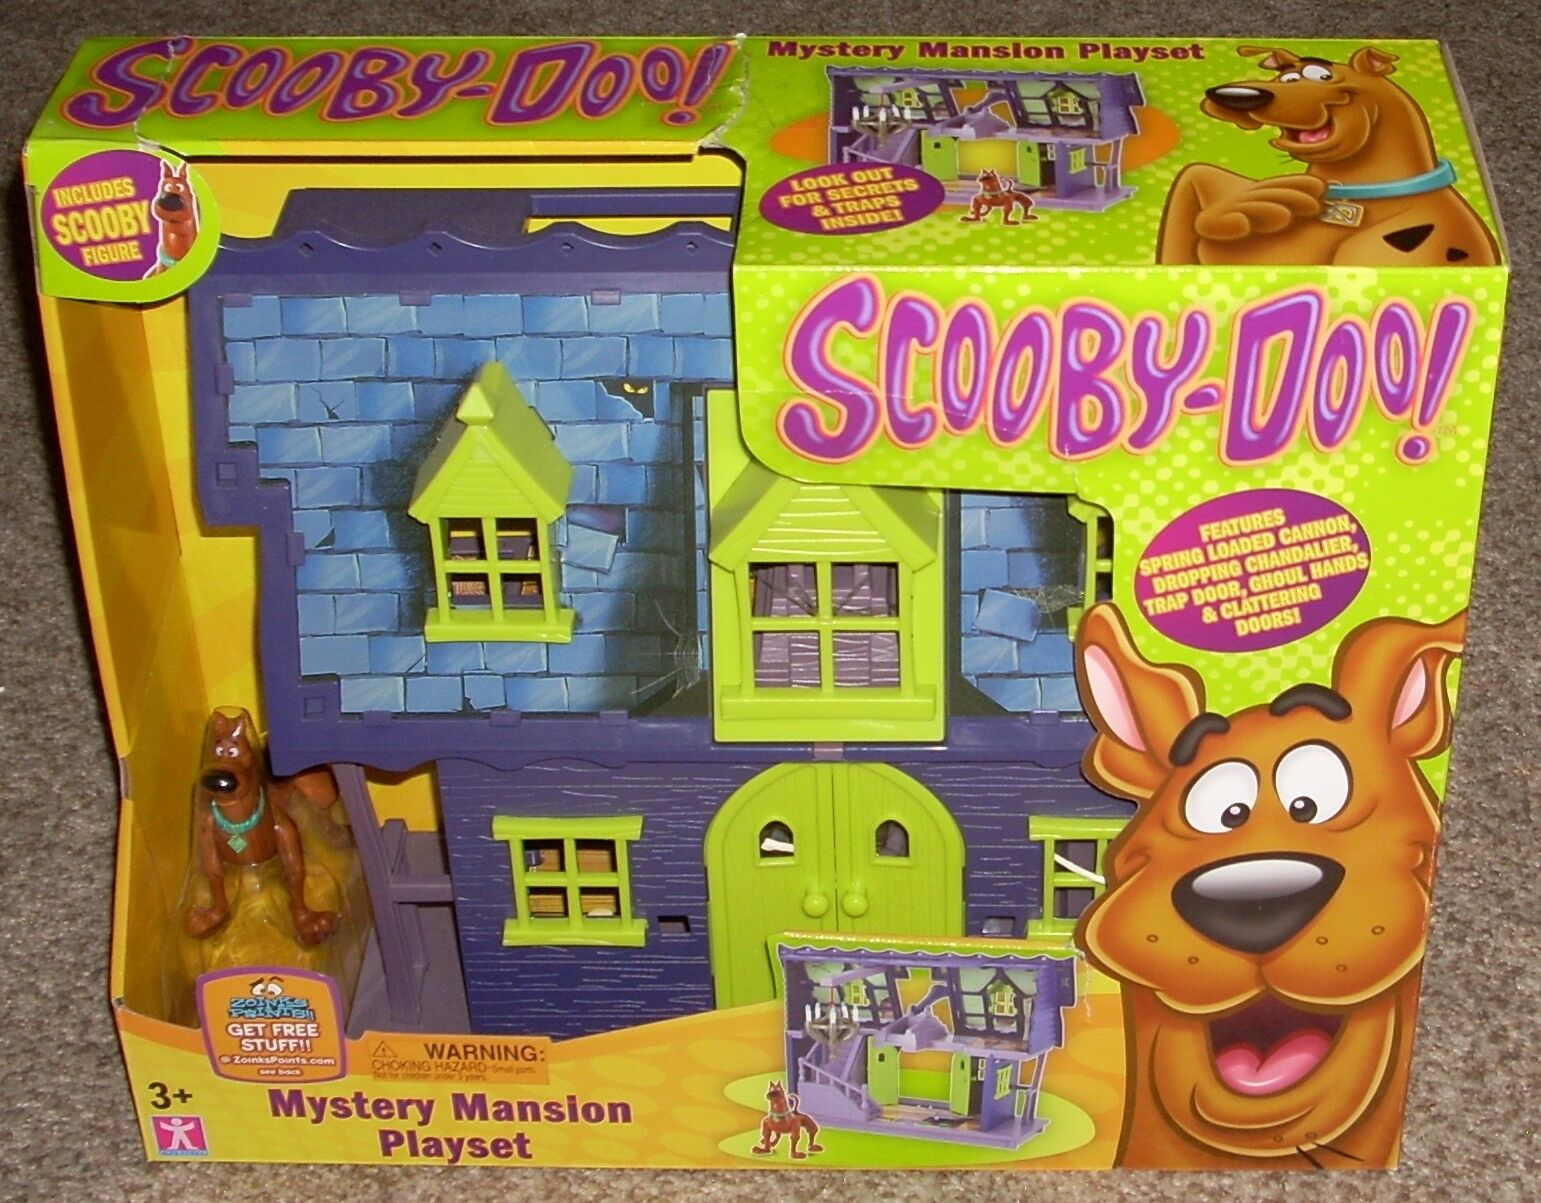 Charte Scooby Doo Mystery Mansion Playset personnage HANNA BARBERA FIGURINE